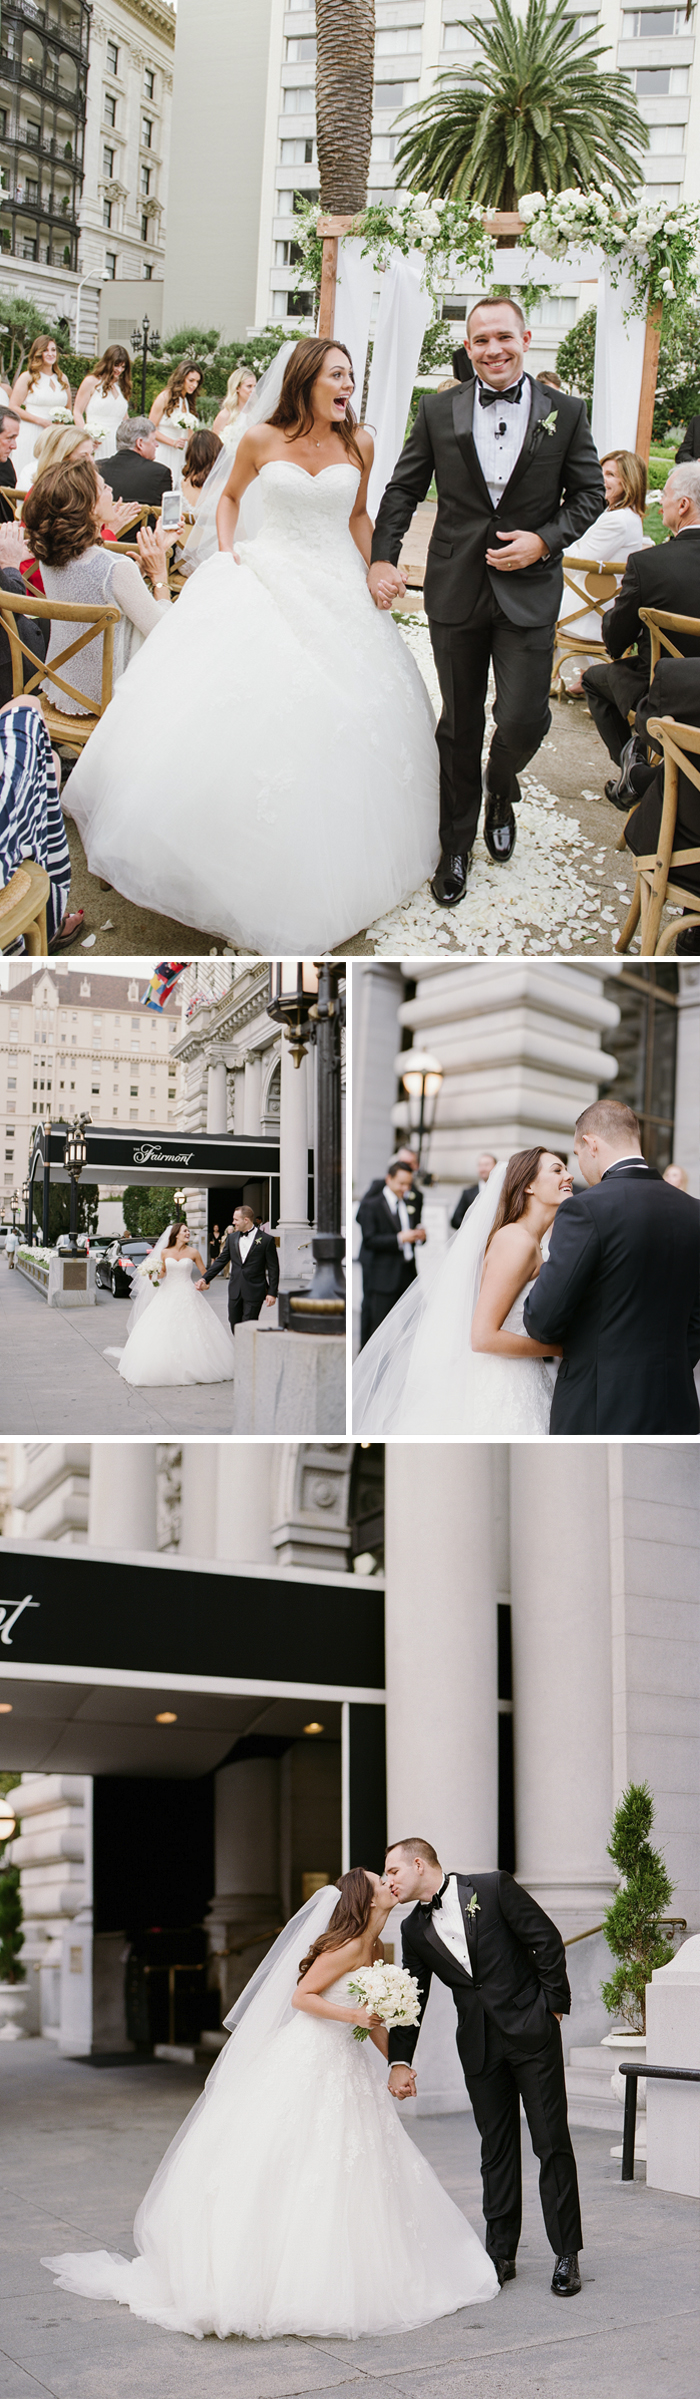 Just married, Meg & Ben walk up the aisle lined with clapping guests, and share a kiss outside the Fairmont Hotel, San Francisco; photo by Sylvie Gil